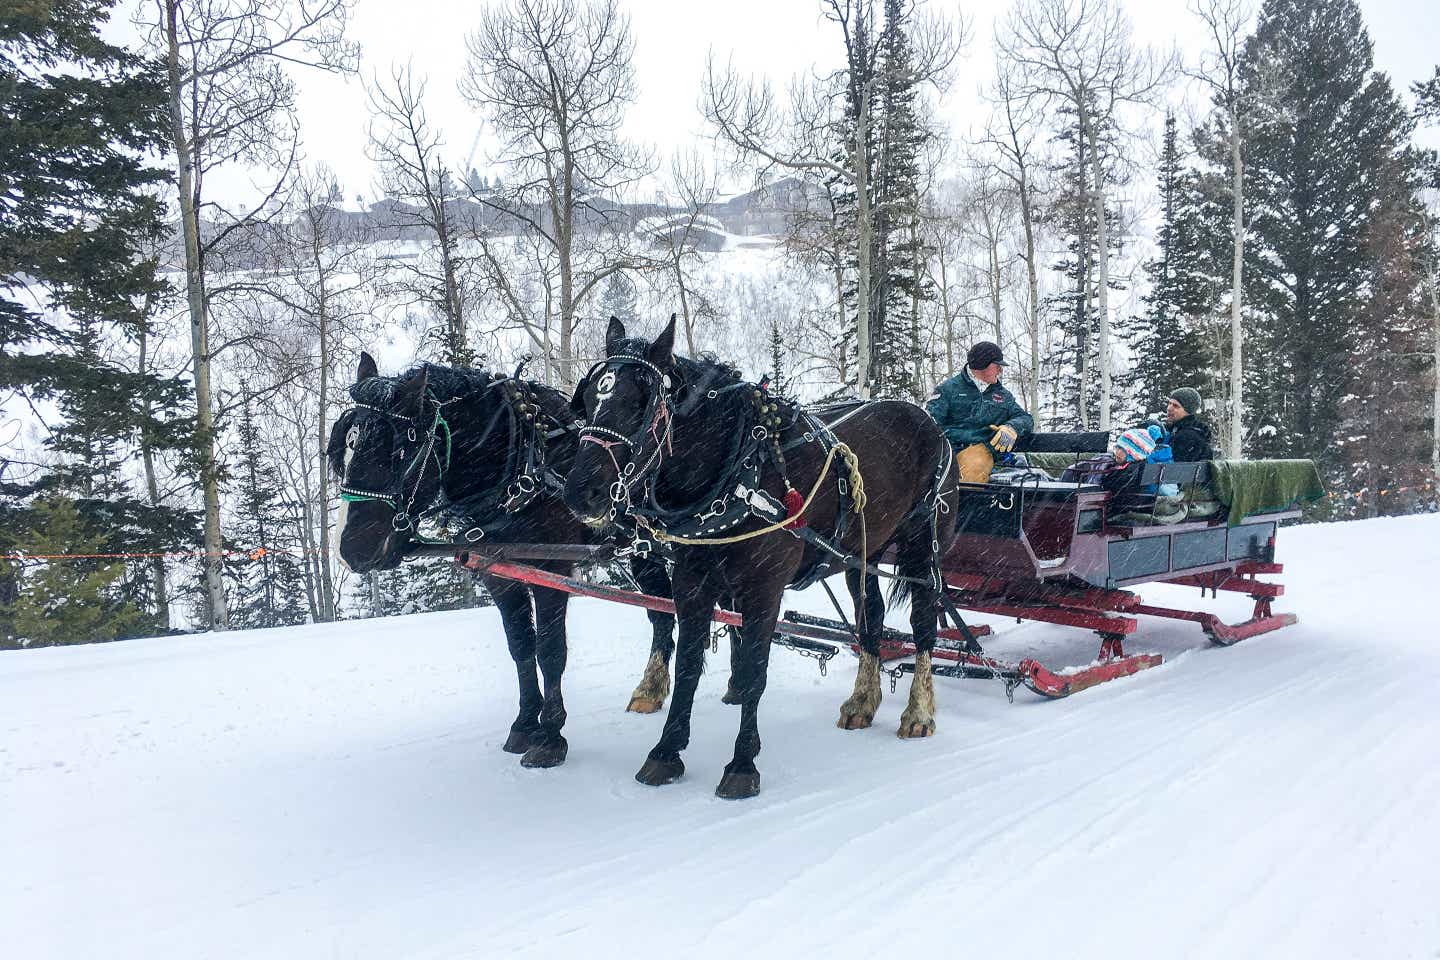 Jessica's family boards a two-horse open sleigh through the winter landscape as snowflakes fall.